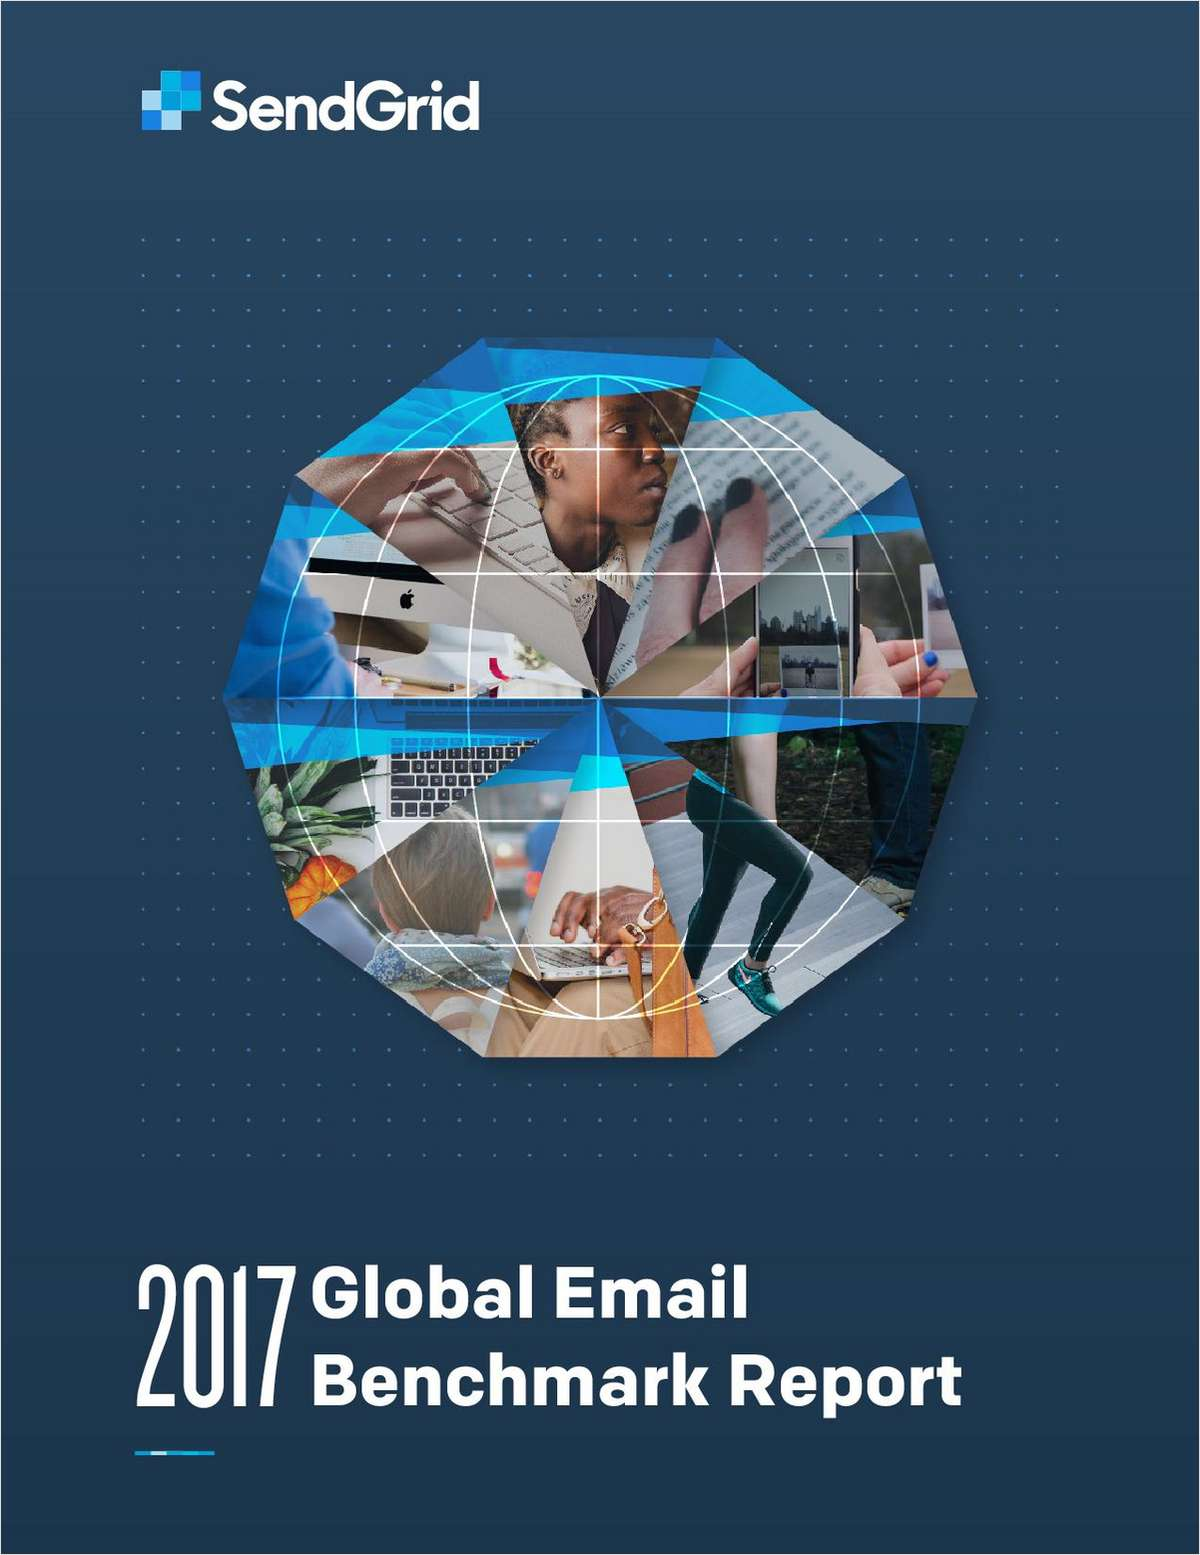 2017 Global Email Benchmark Report